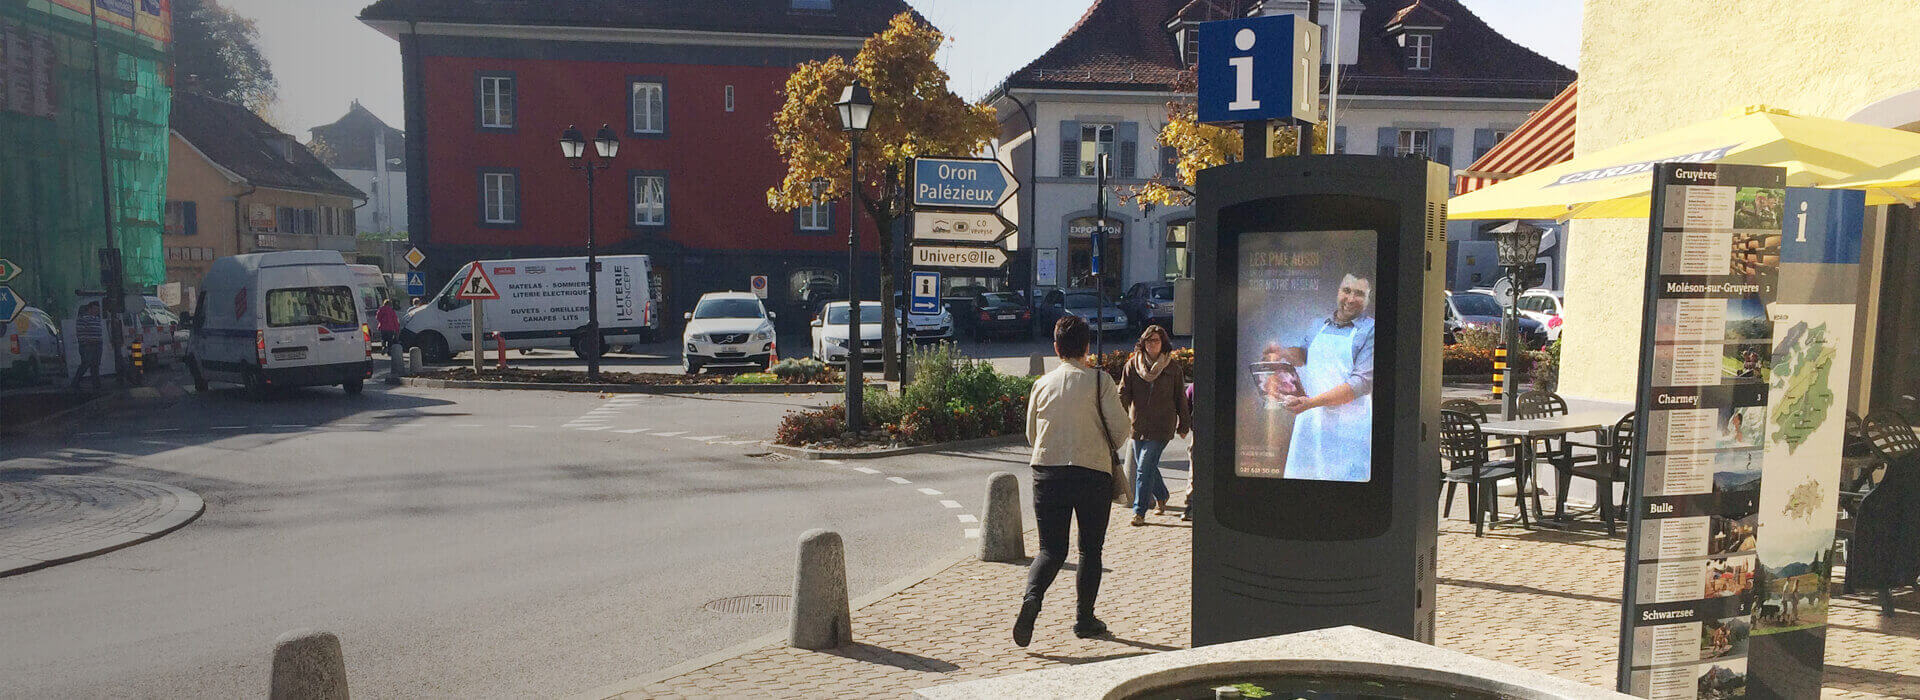 Interactive Digital Billboard